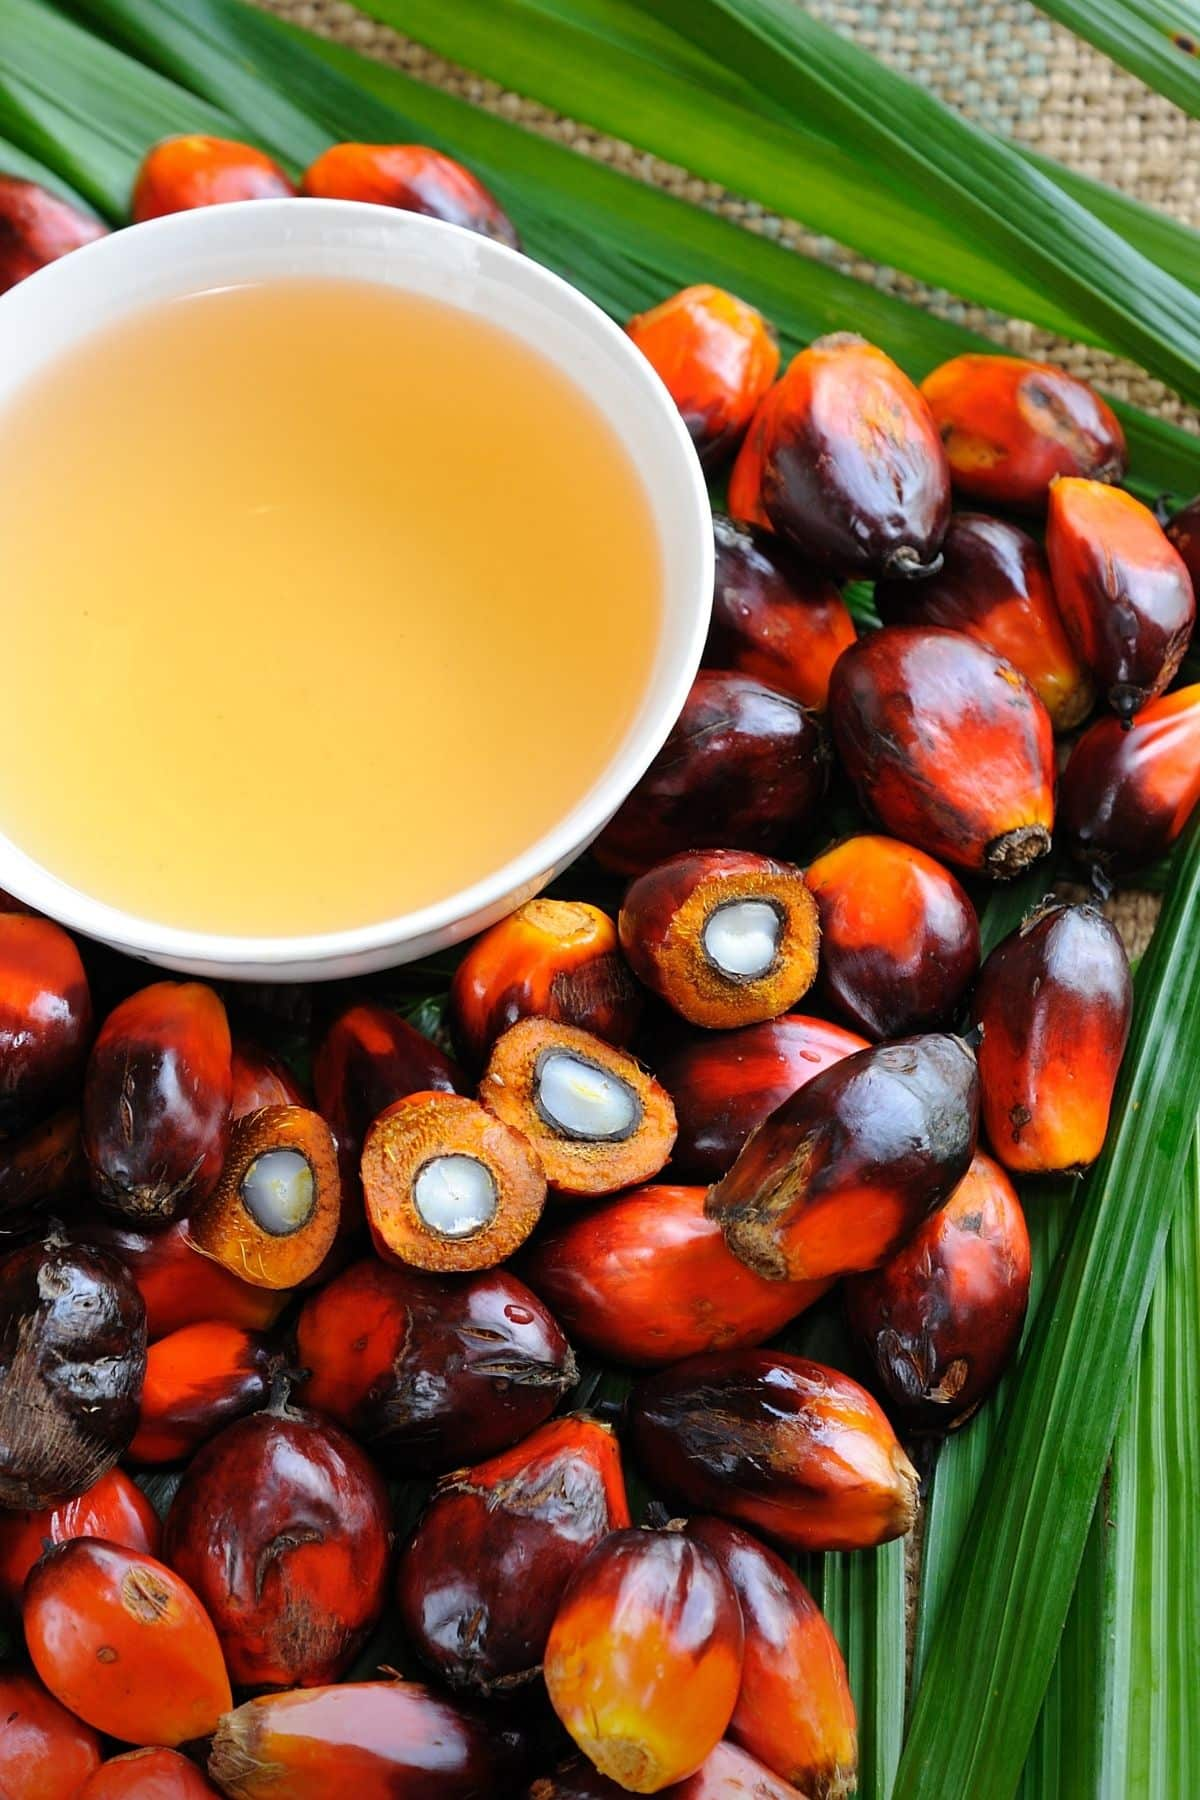 red palm oil on a table with fresh palm kernels